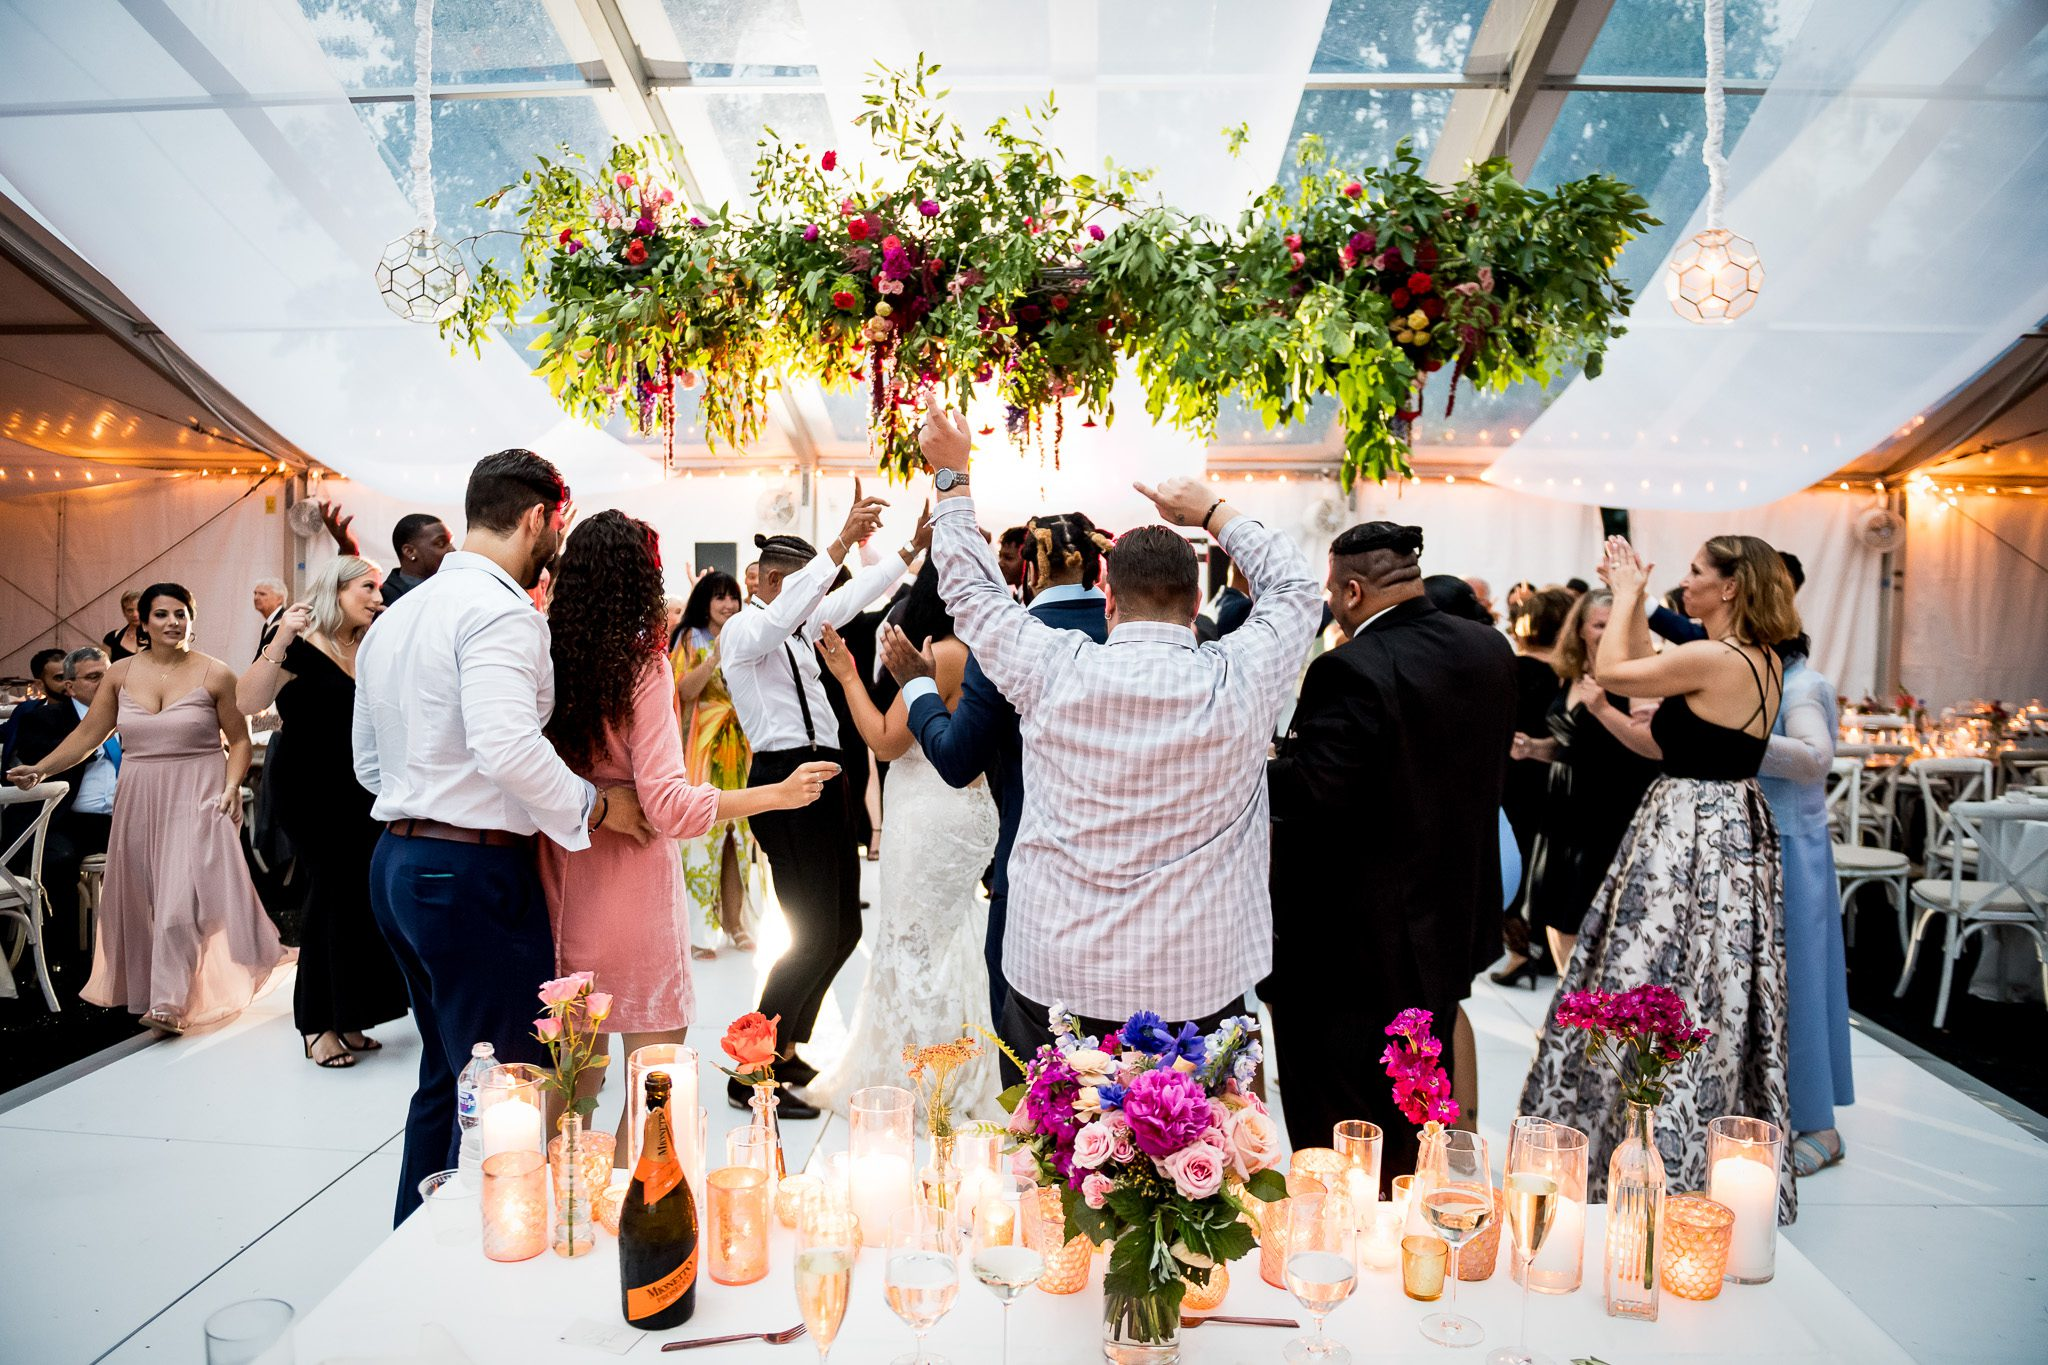 The dance floor is packed inside a florally decorated white tent at a Minnesota backyard wedding.